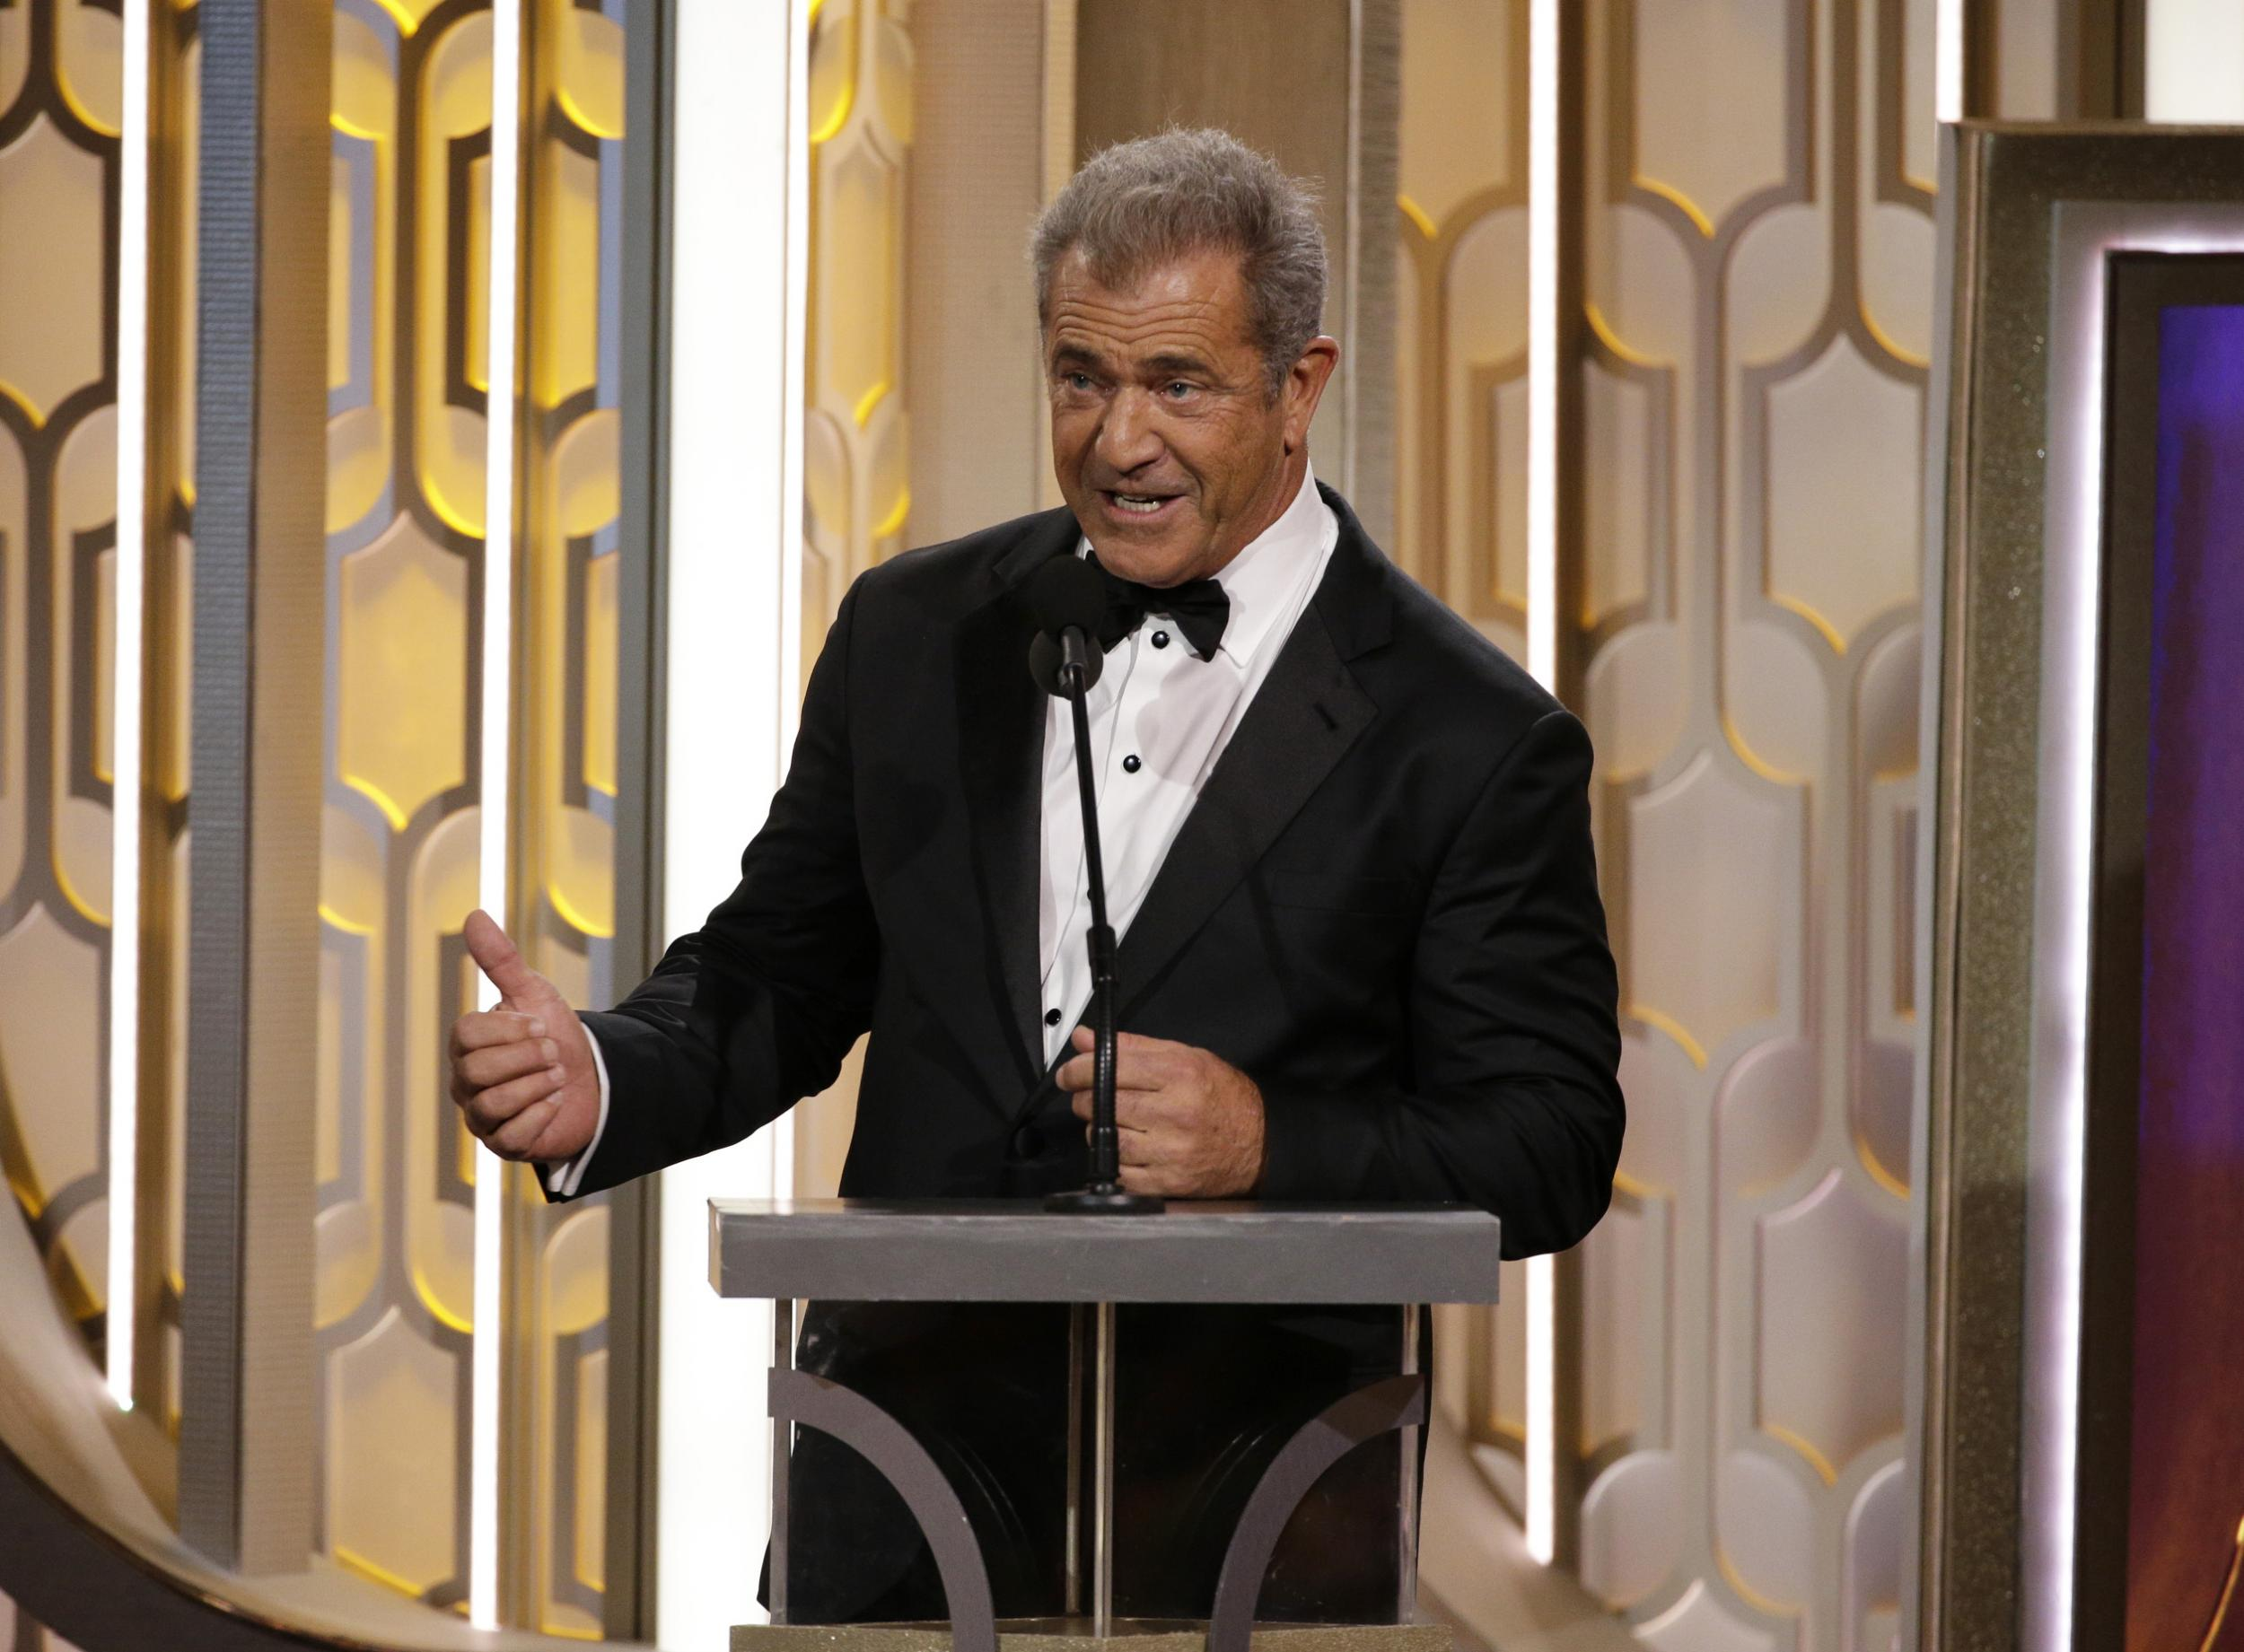 Judge says mel gibson can get drunk again yay nude (23 photos)